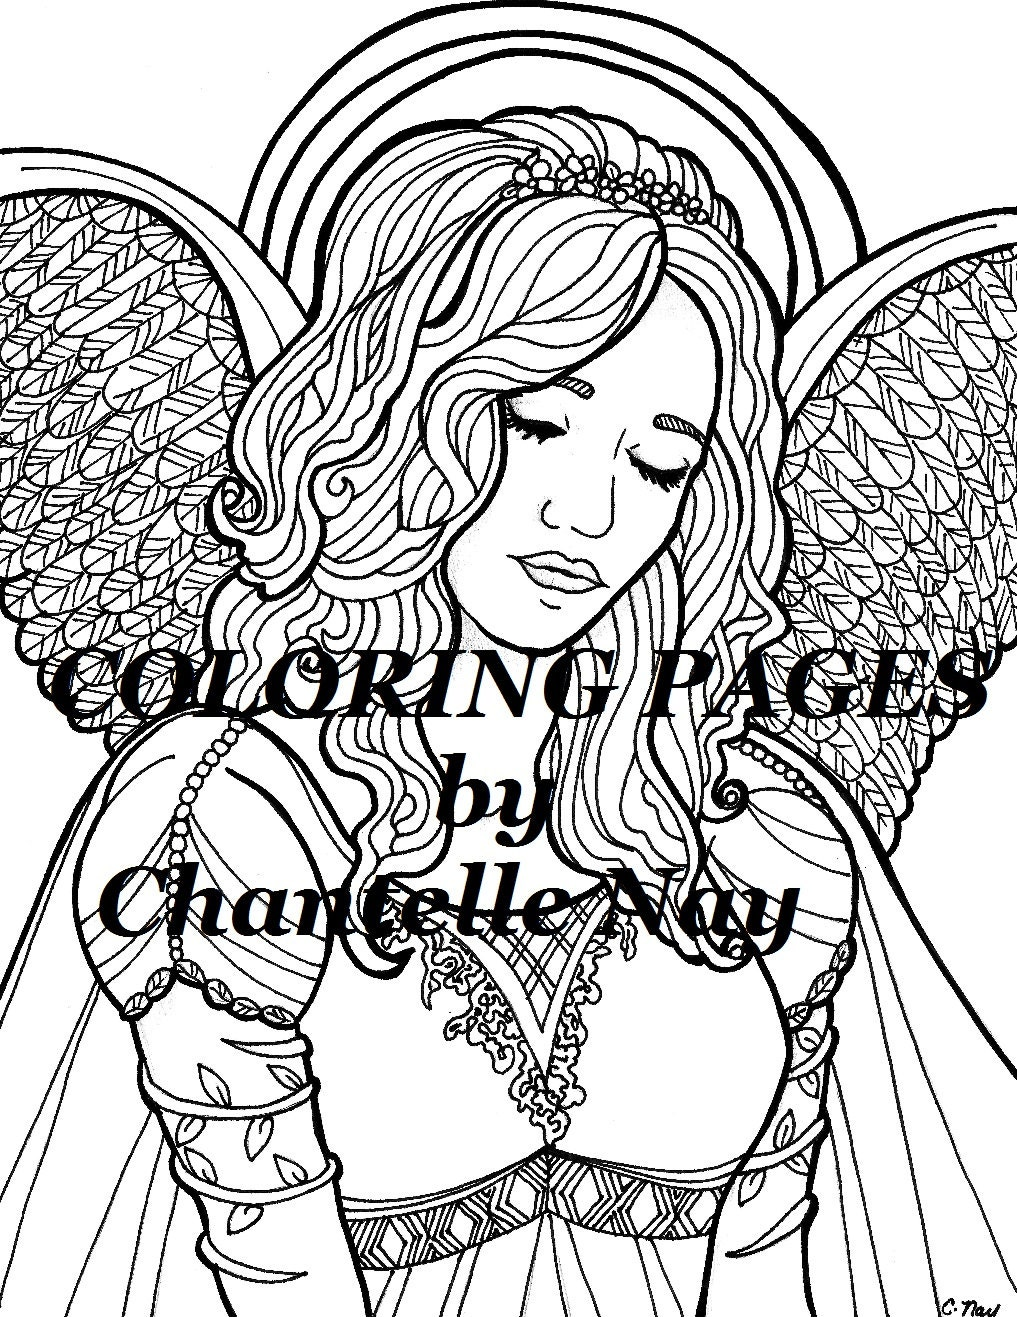 kylie coloring page angel woman face coloring